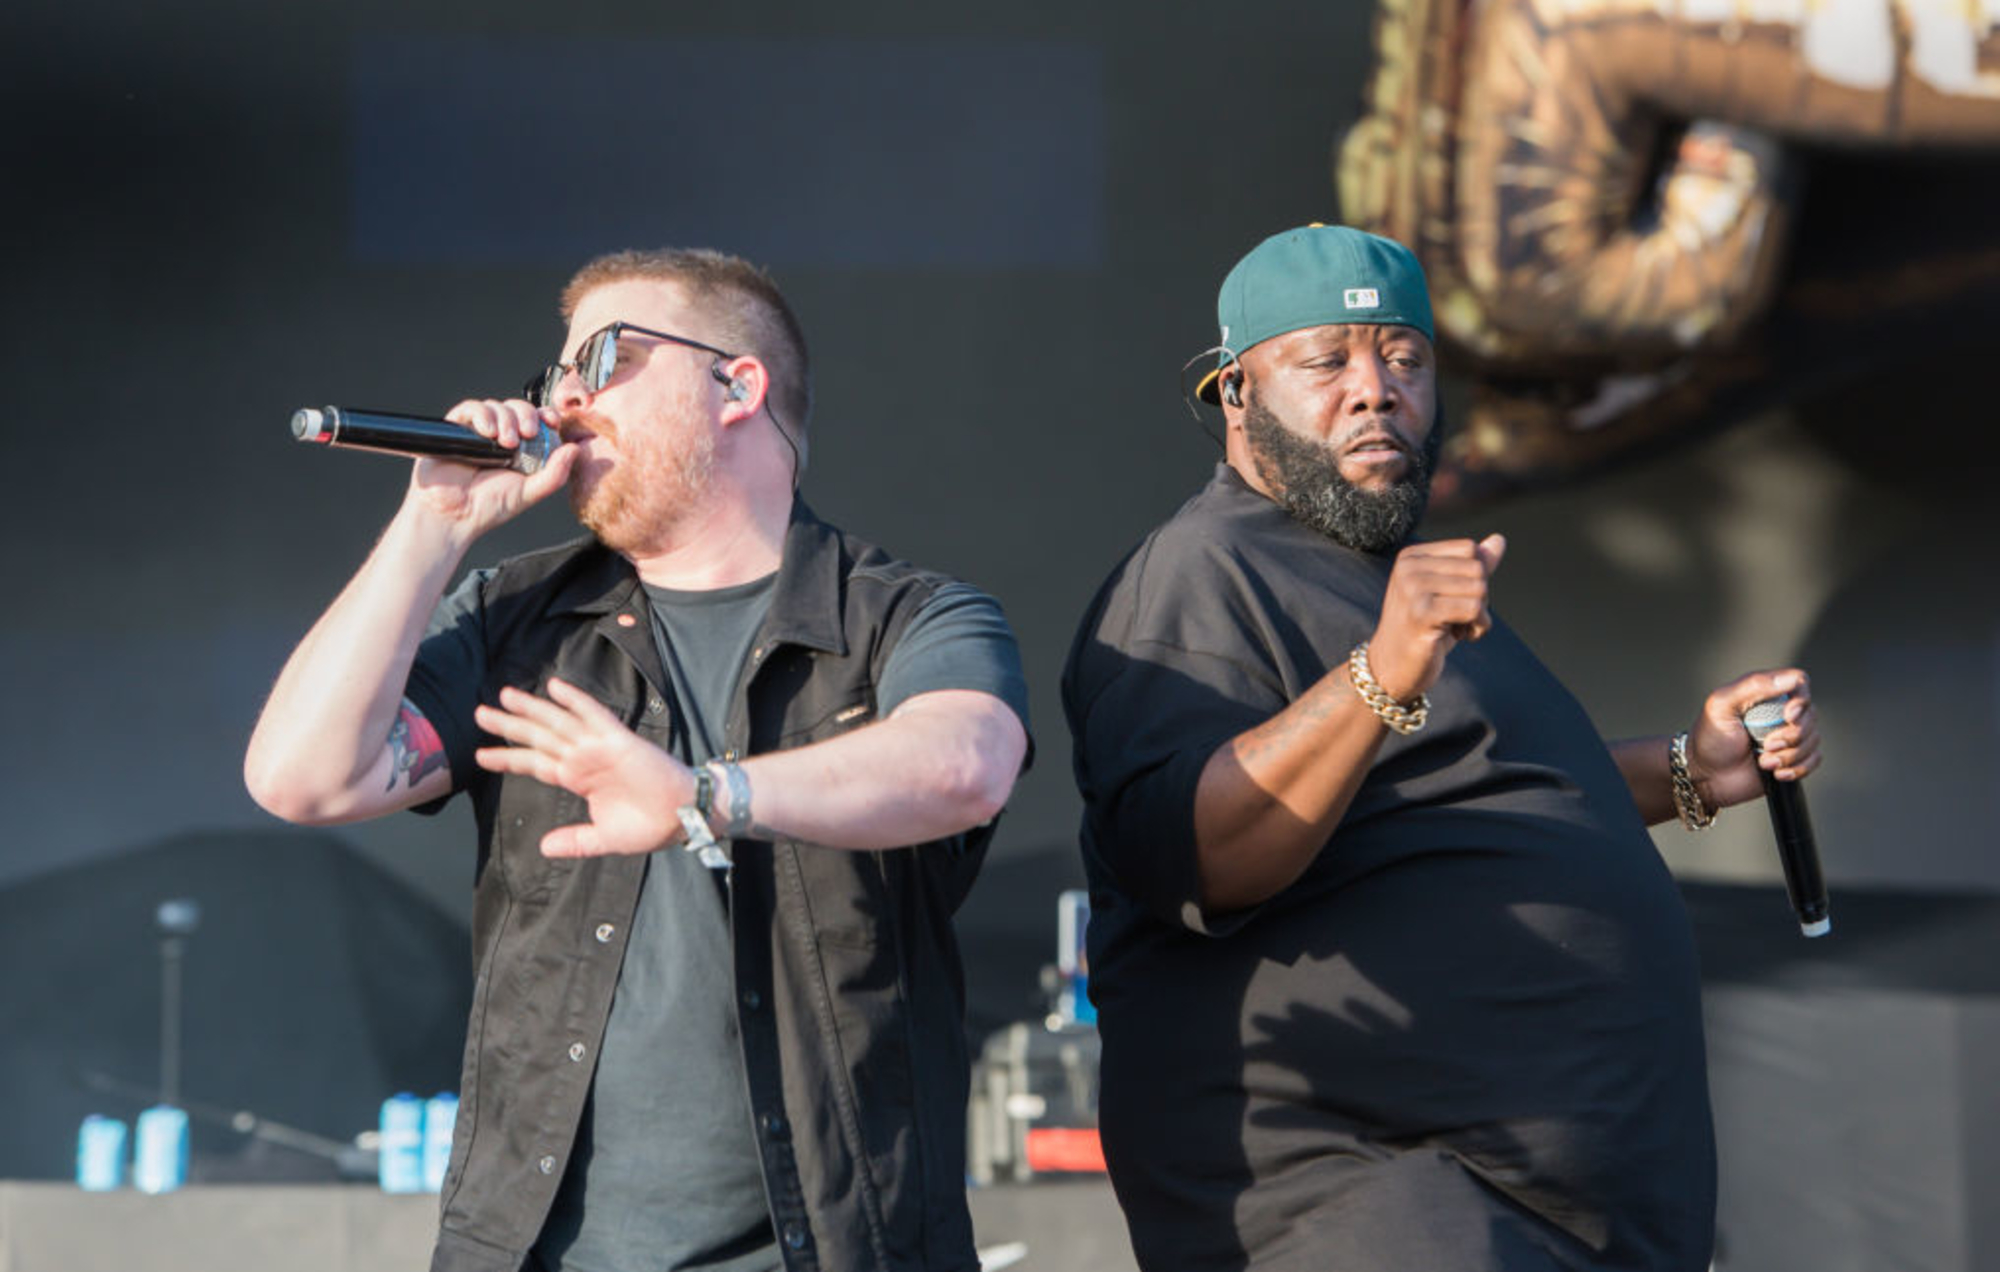 Run the Jewels' new album 'RTJ4' is finally finished, says El-P